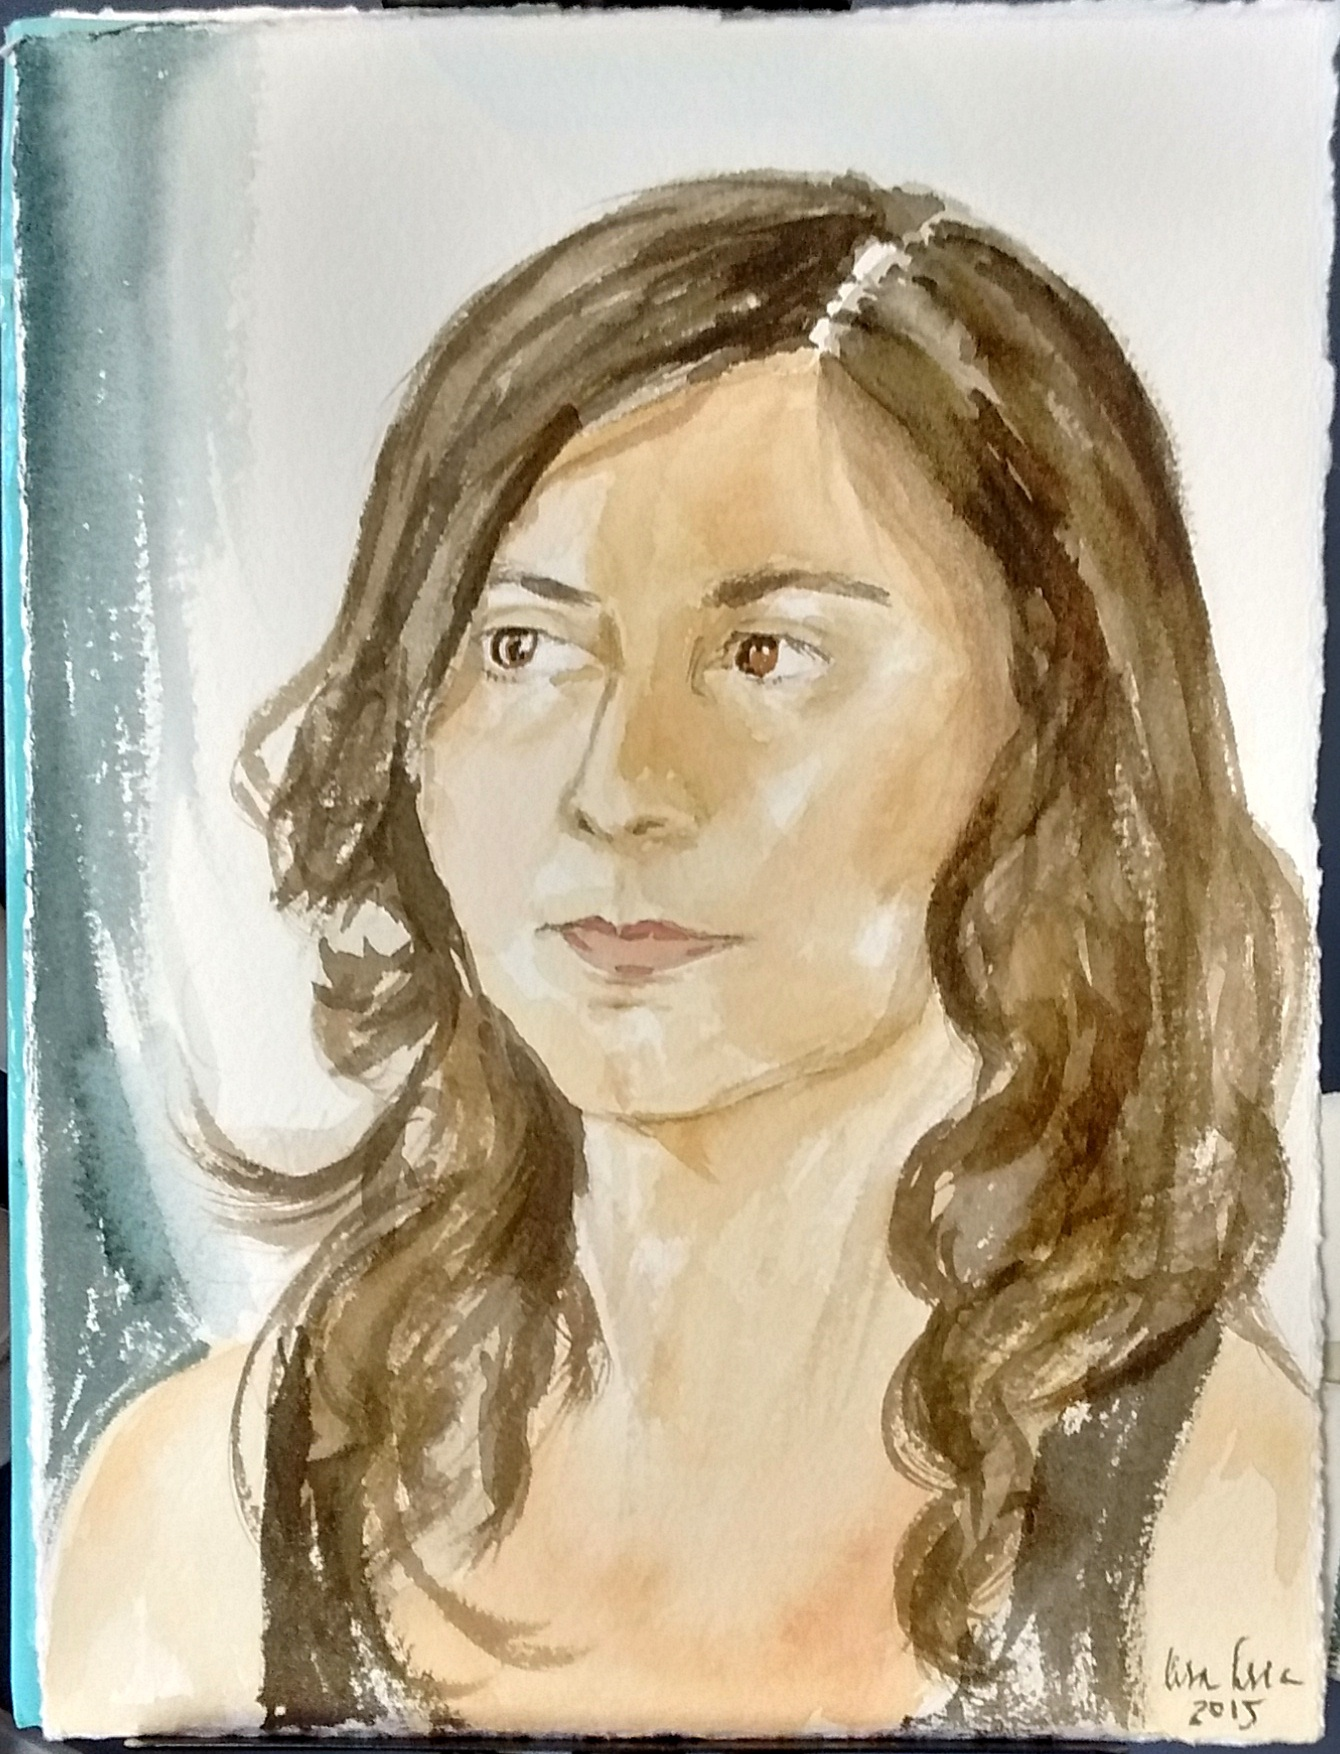 Portrait of Roula in watercolor, 2015